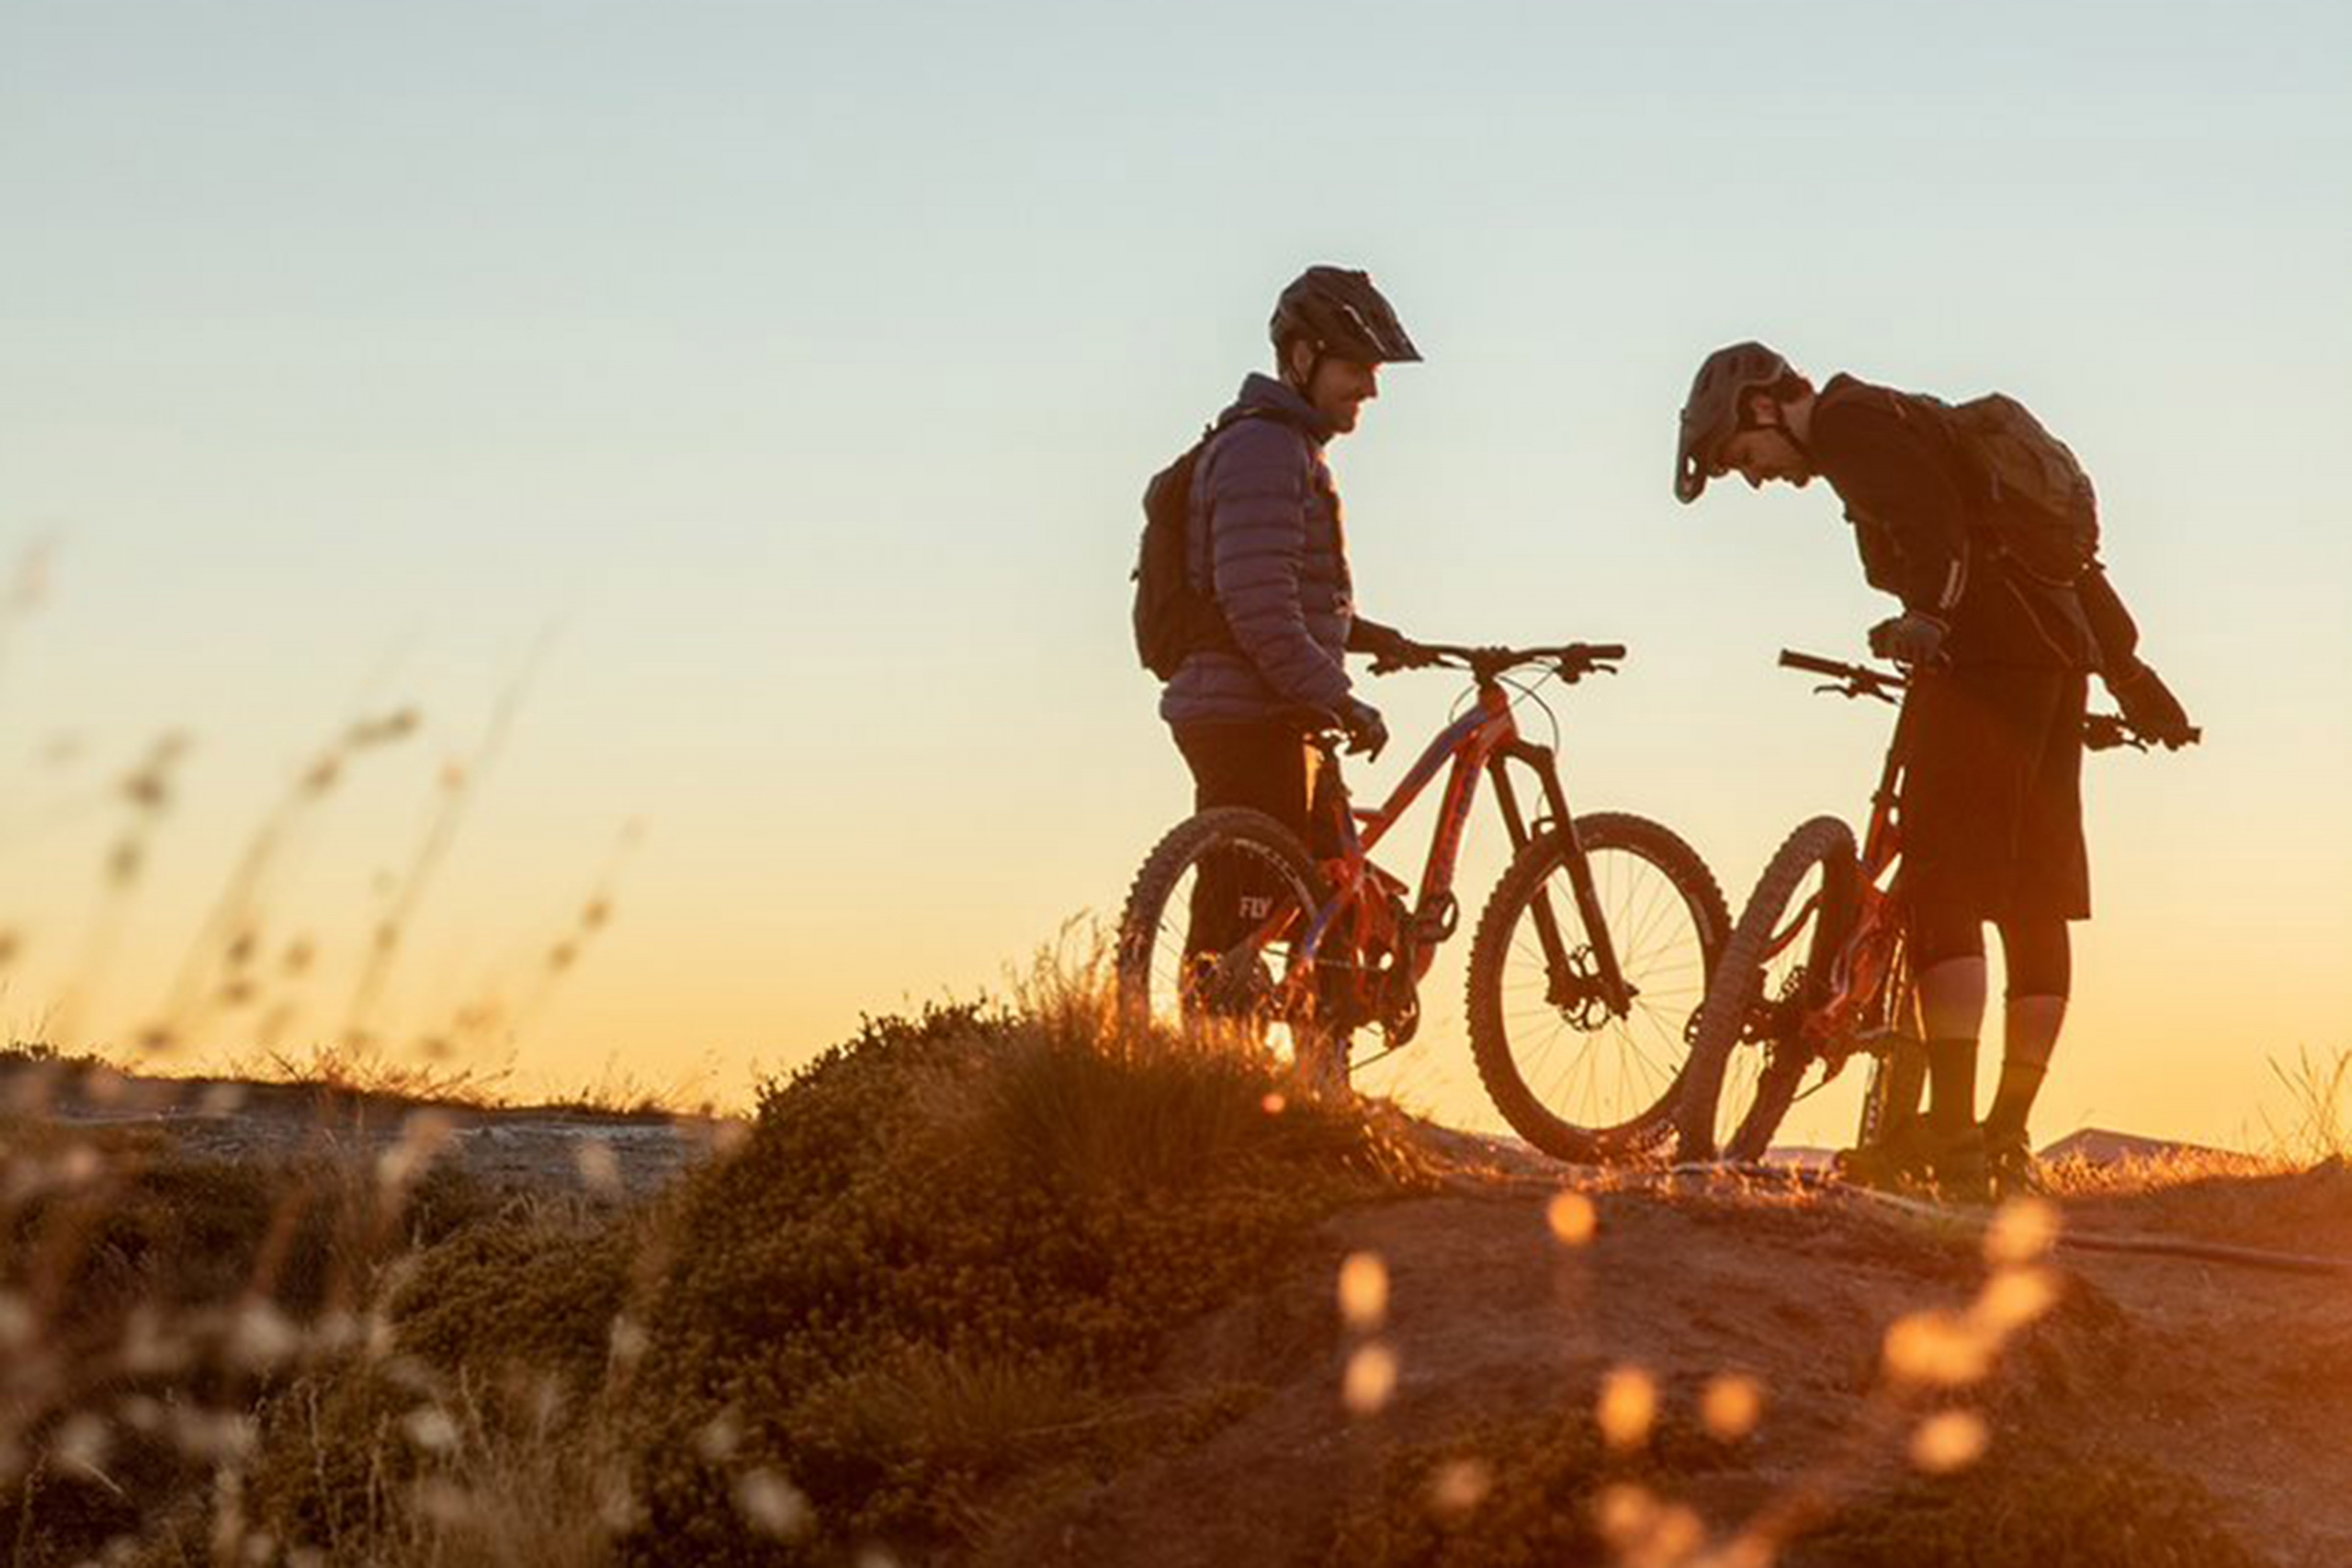 Two mountain bikers on Rossignol bikes at dusk.